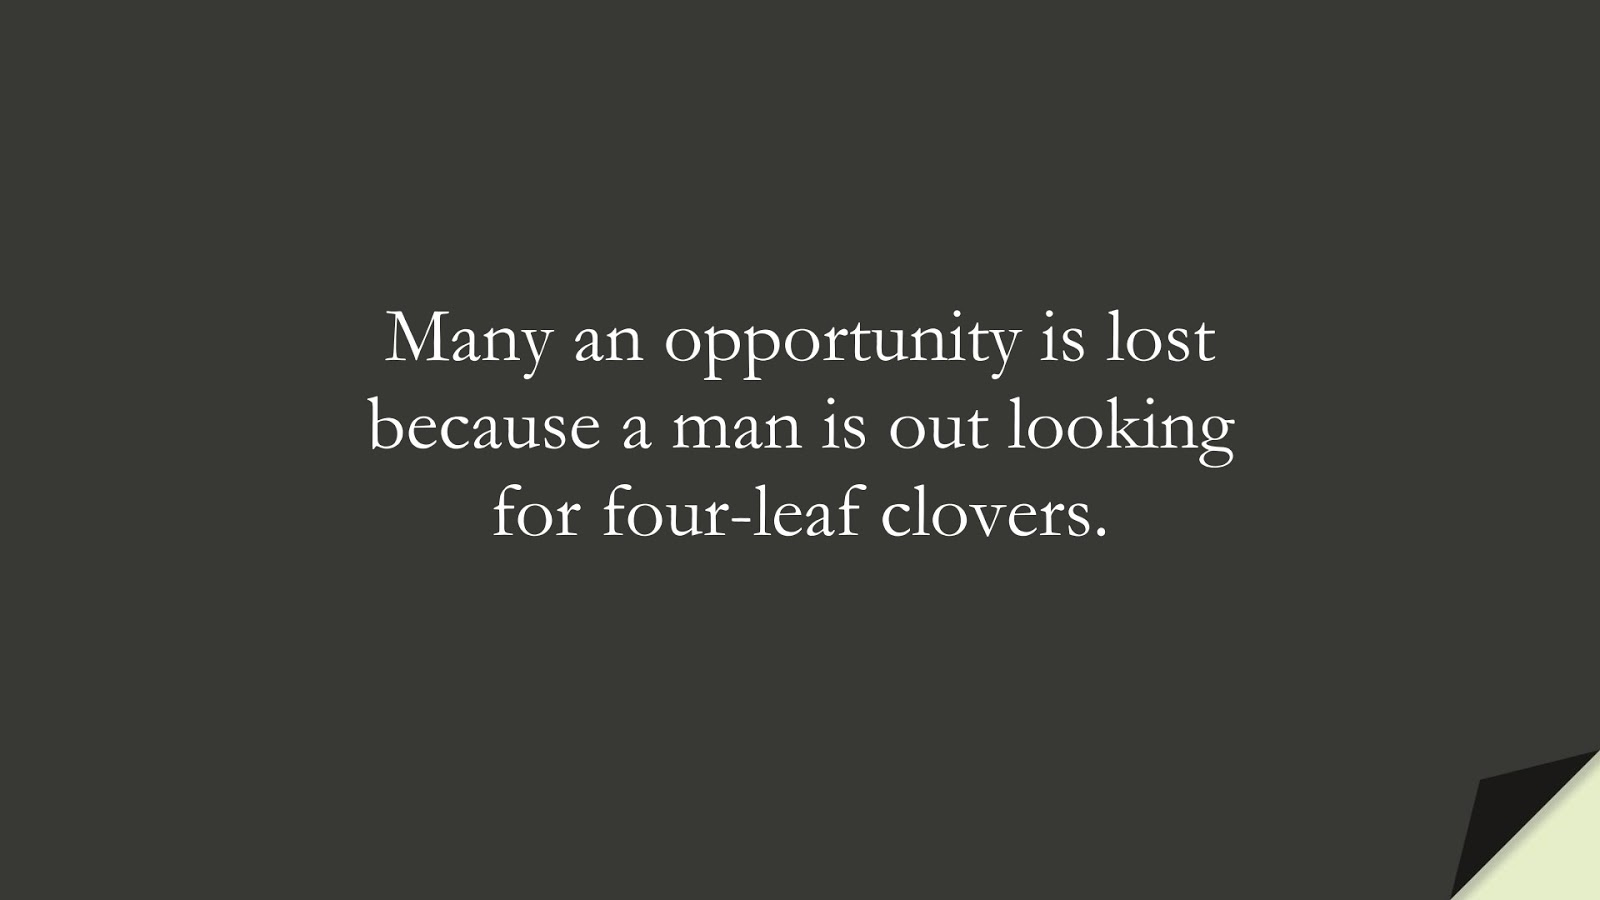 Many an opportunity is lost because a man is out looking for four-leaf clovers.FALSE